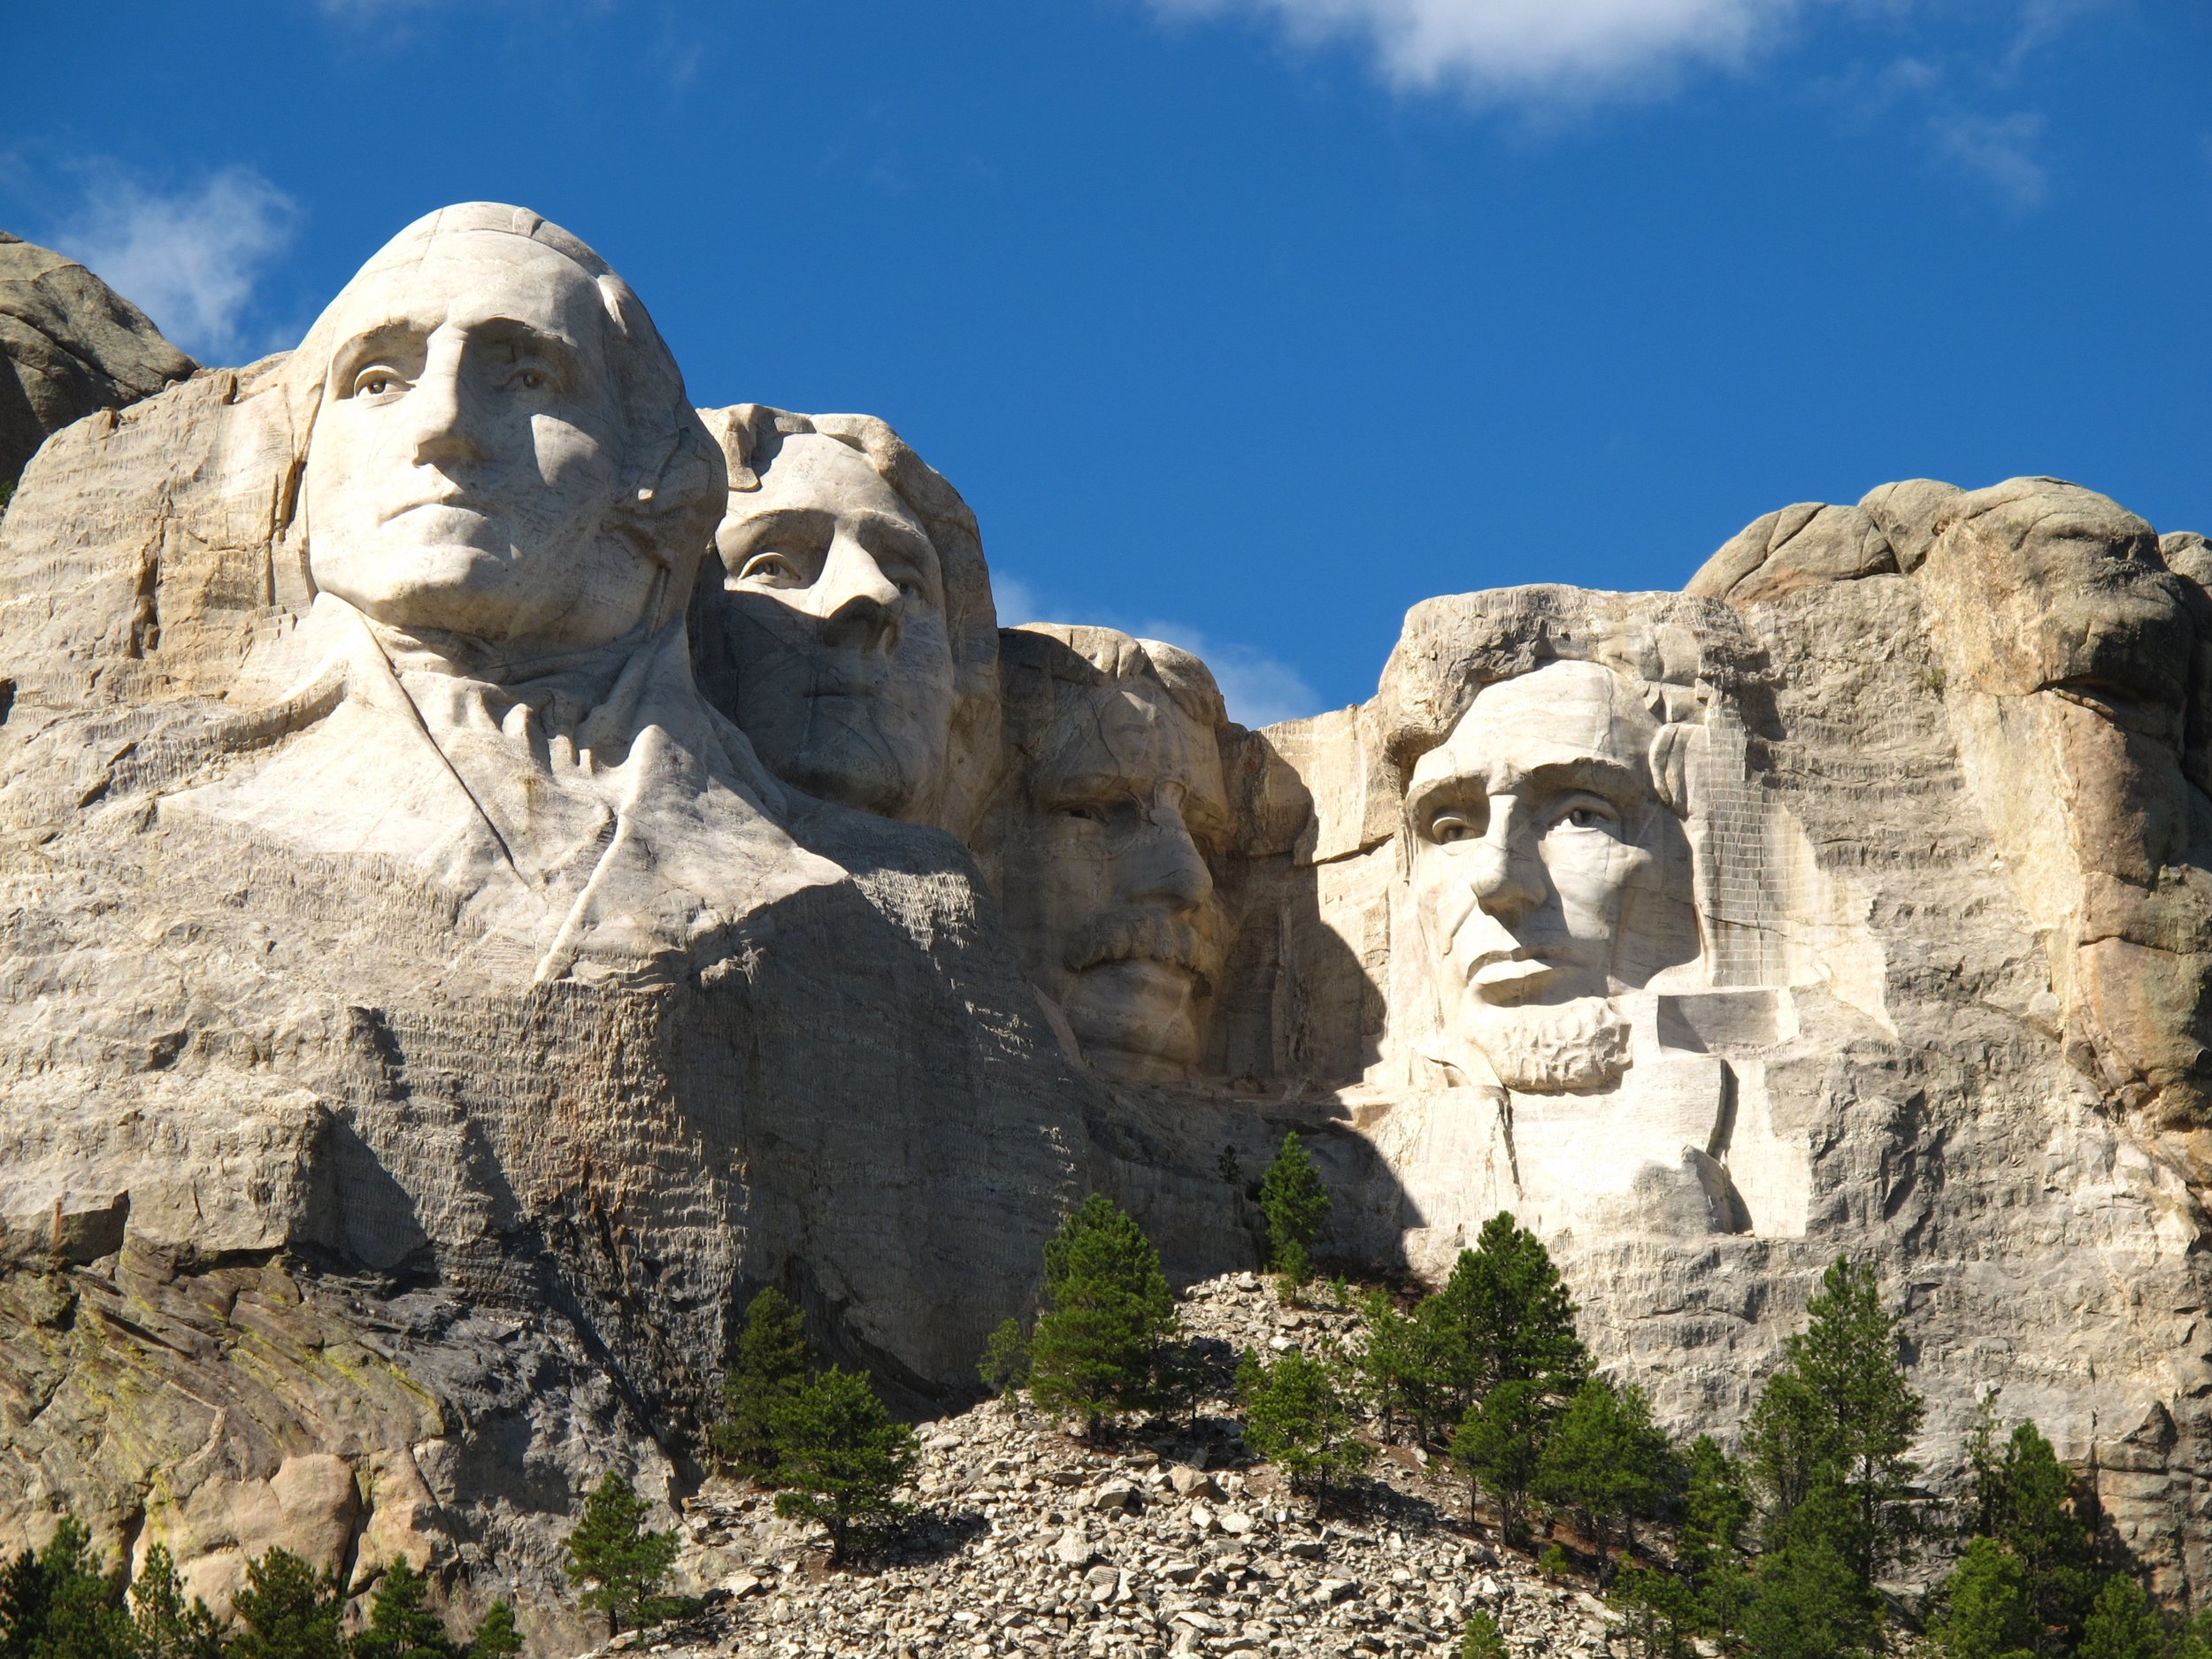 Mount Rushmore. From left to right: George Washington, Thomas Jefferson, Theodore Roosevelt and Abraham Lincoln